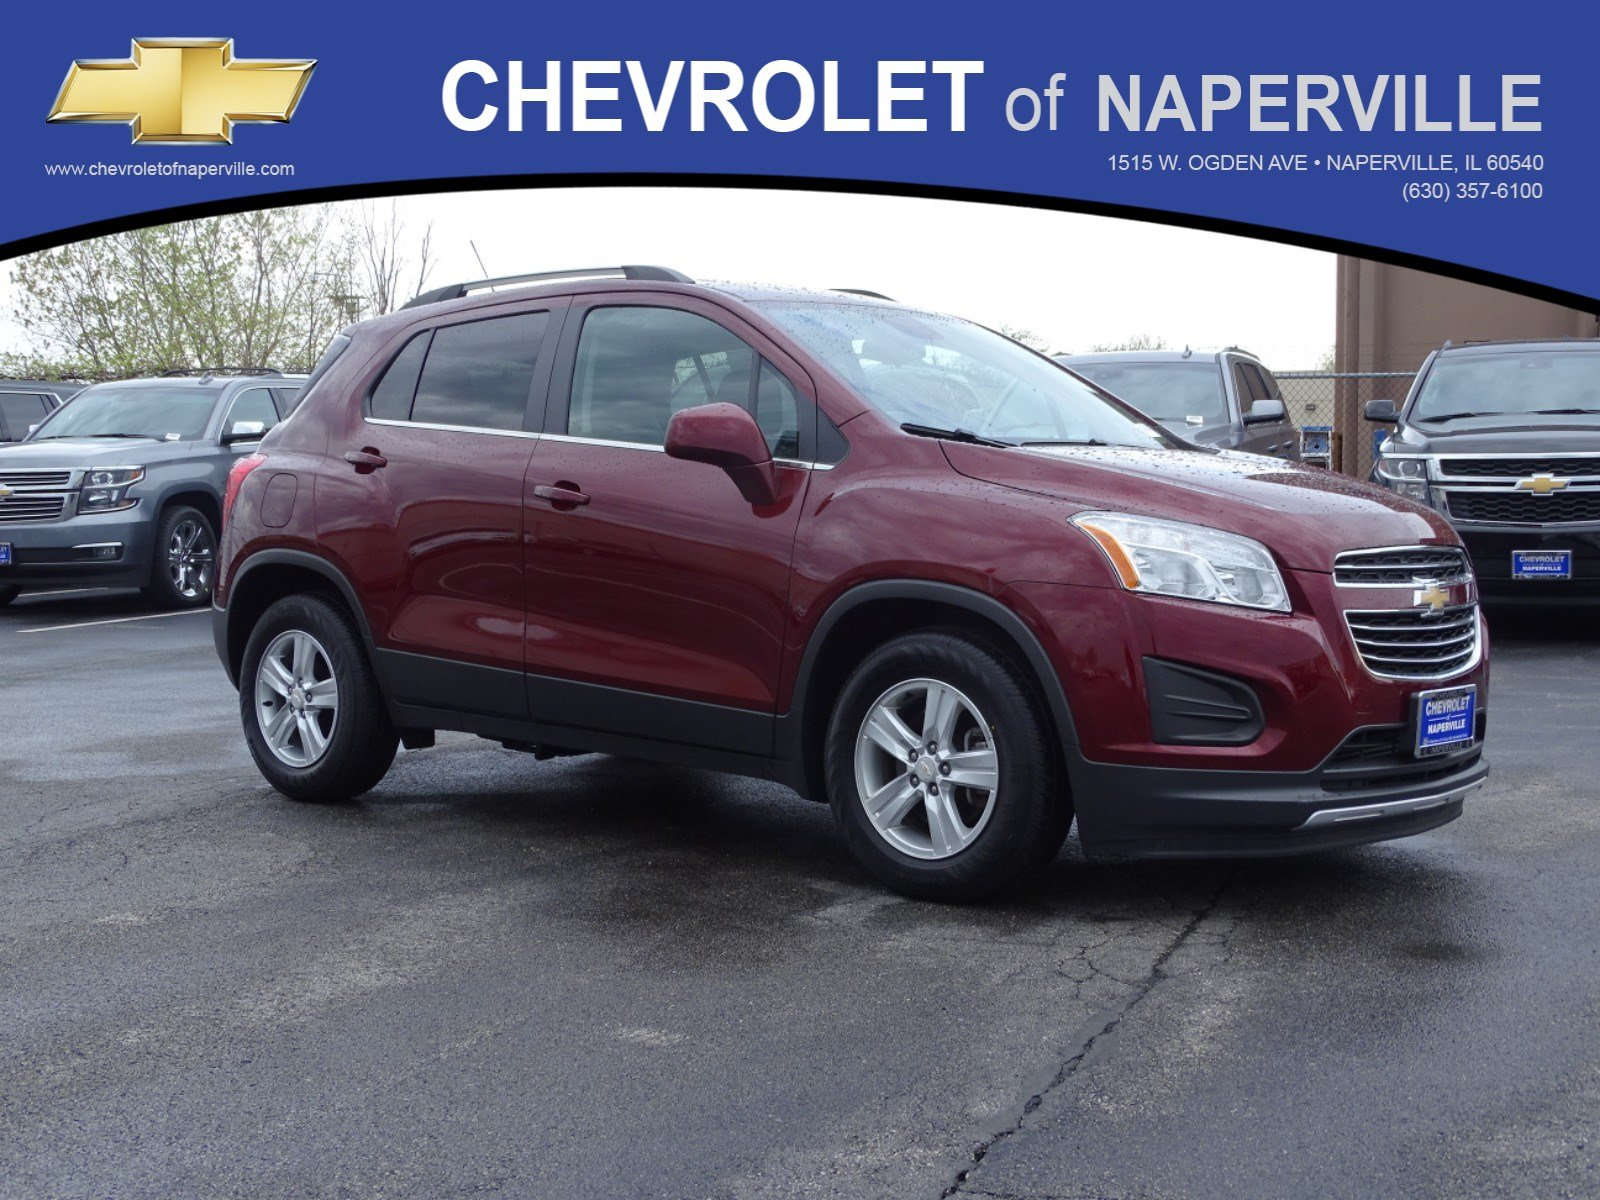 fwd inventory lt in owned pre cruze naperville used of car chevrolet